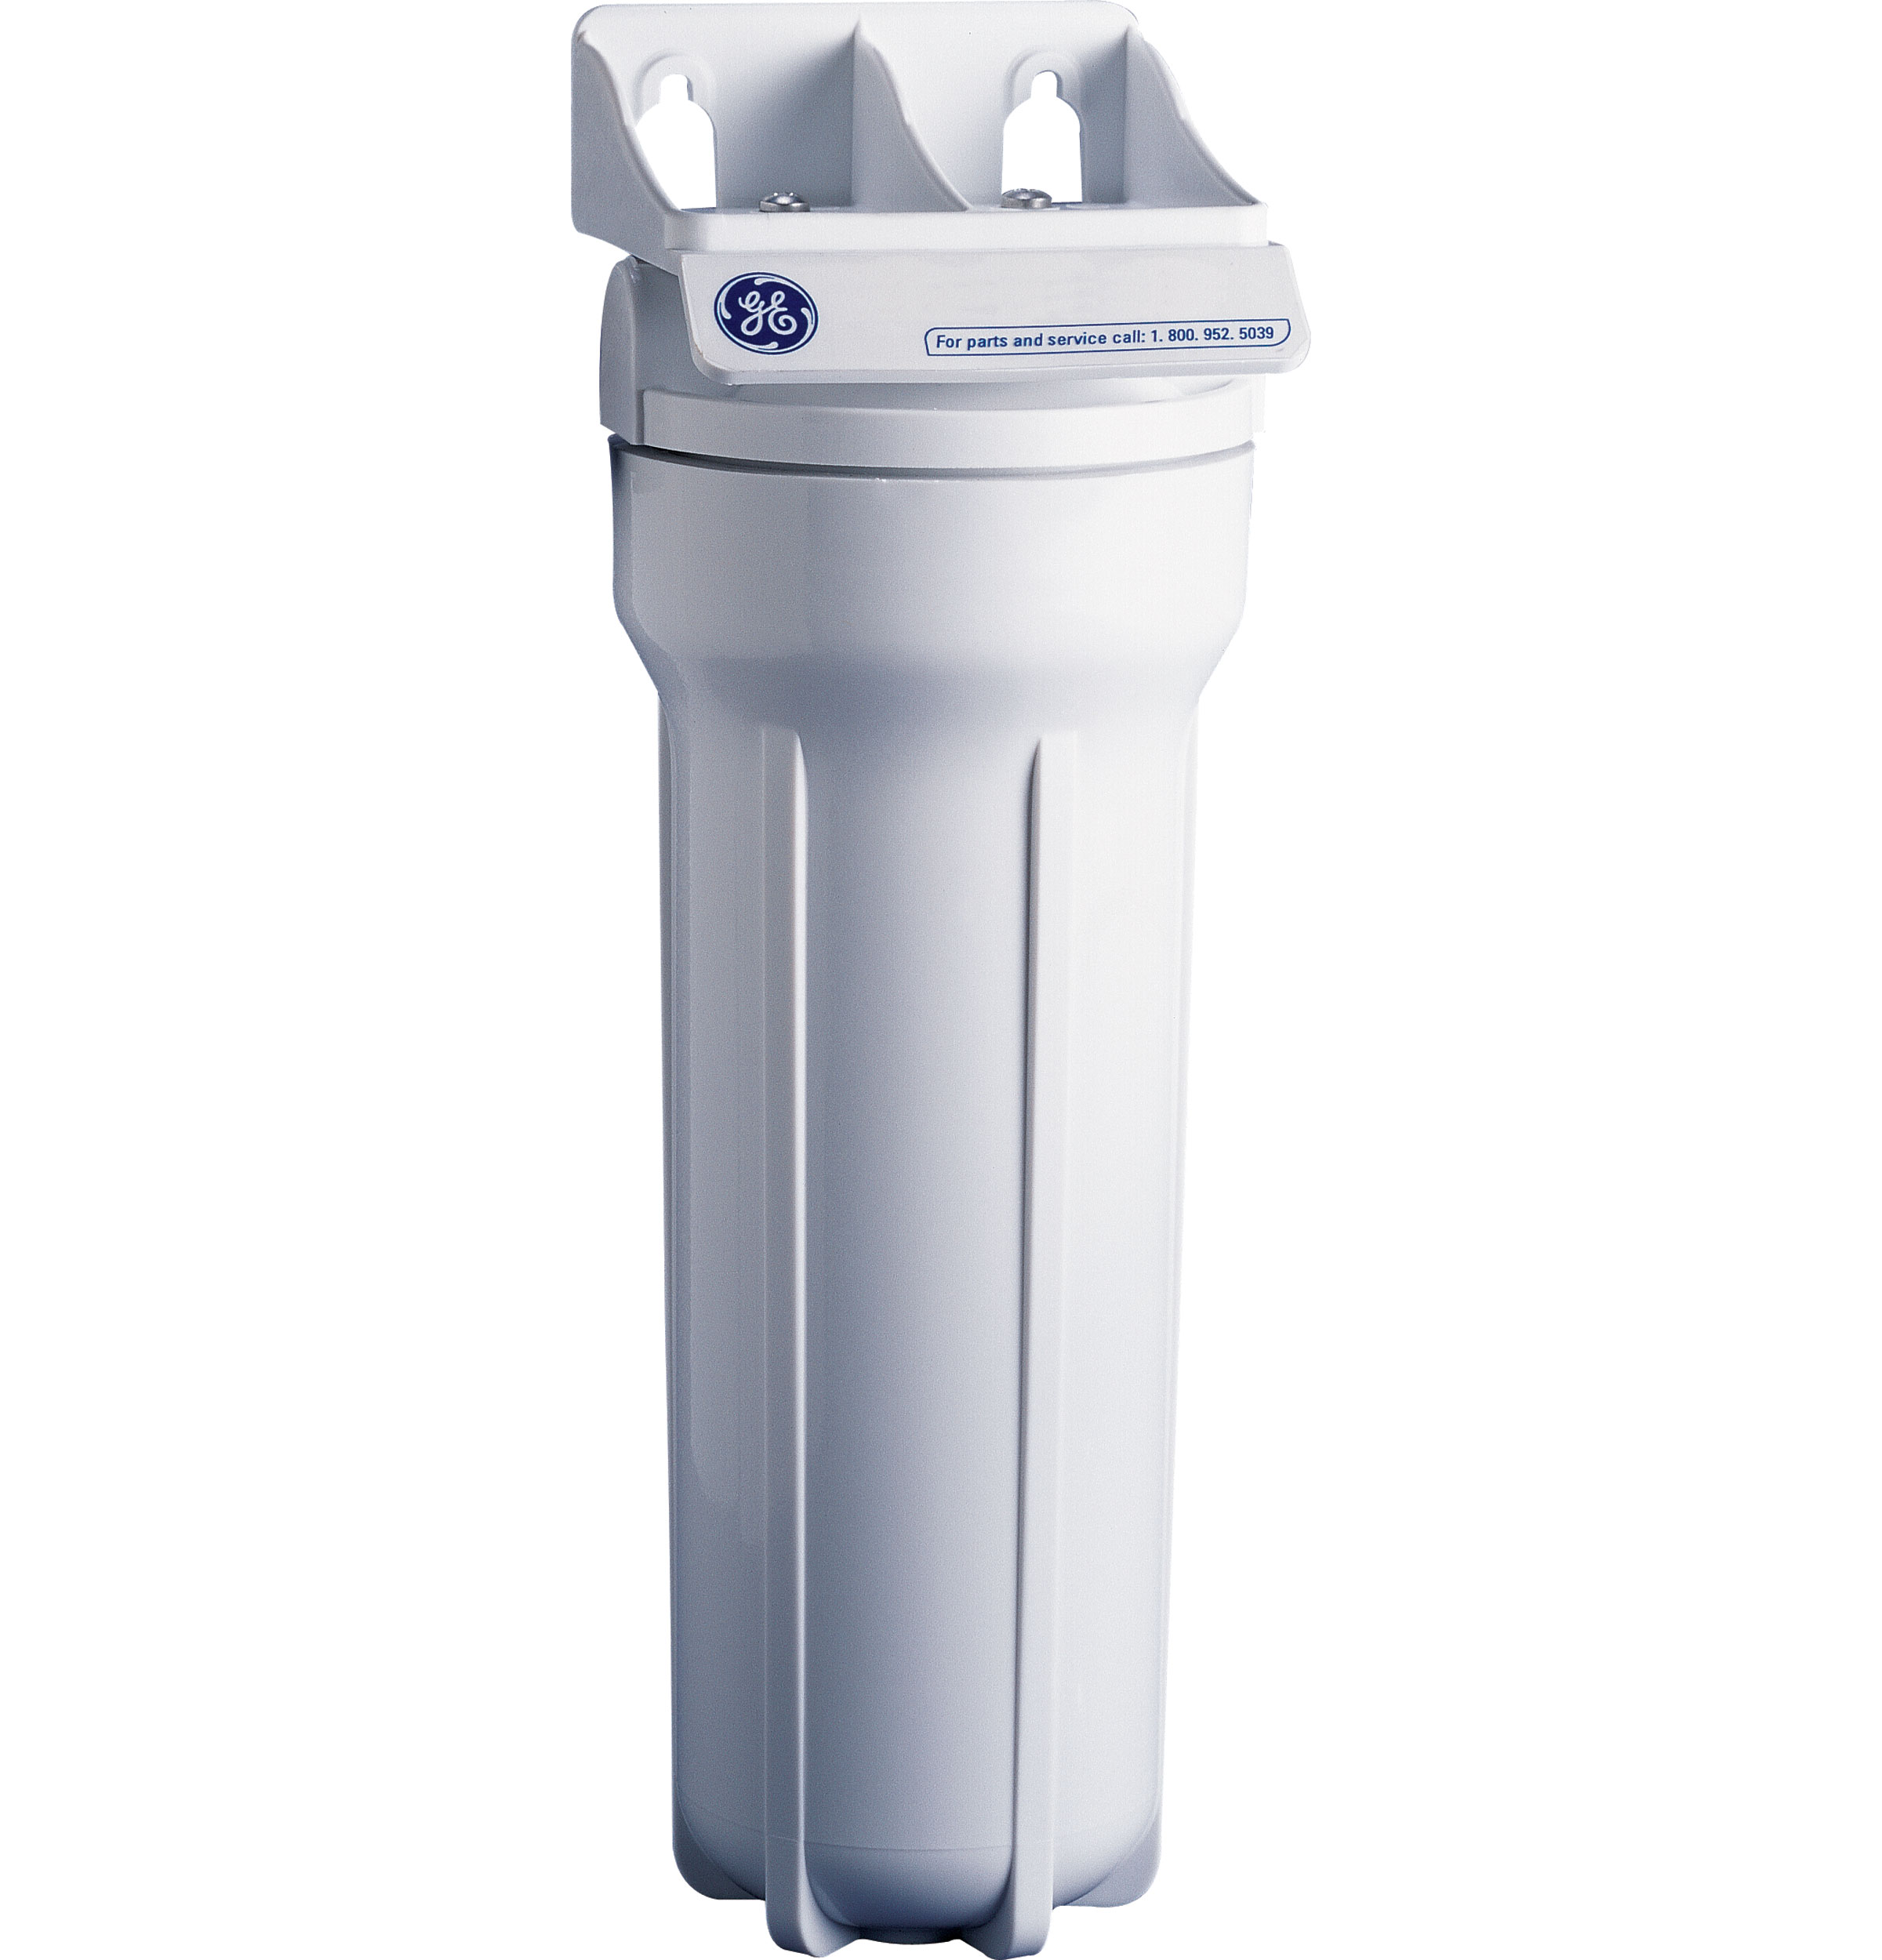 Smart Water Filters Gear Single Stage Drinking Water Filtration System Gx1s01c Ge